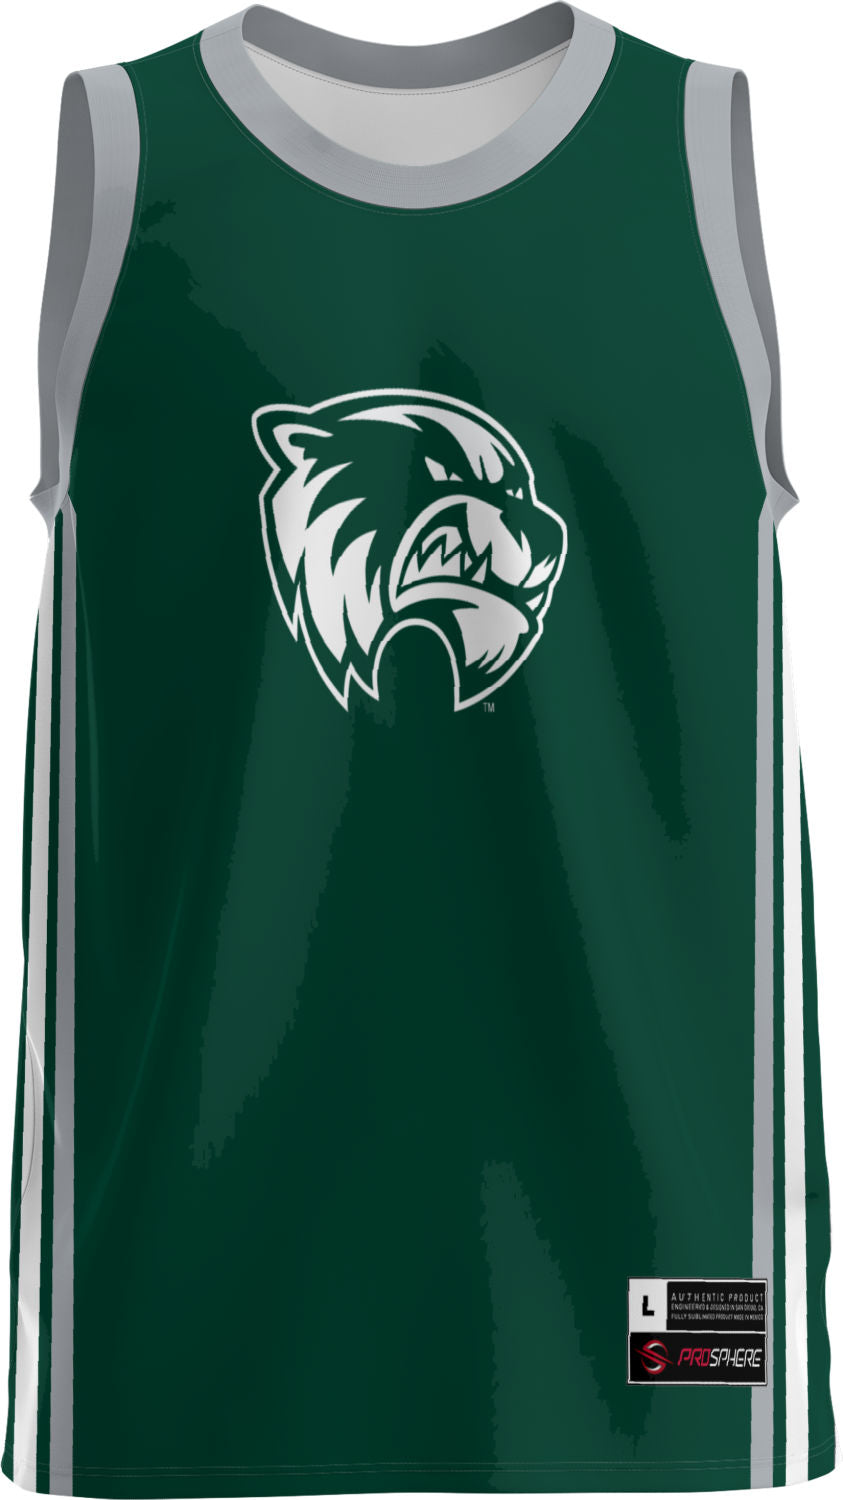 Utah Valley University Youth Replica Basketball Fan Jersey - Classic